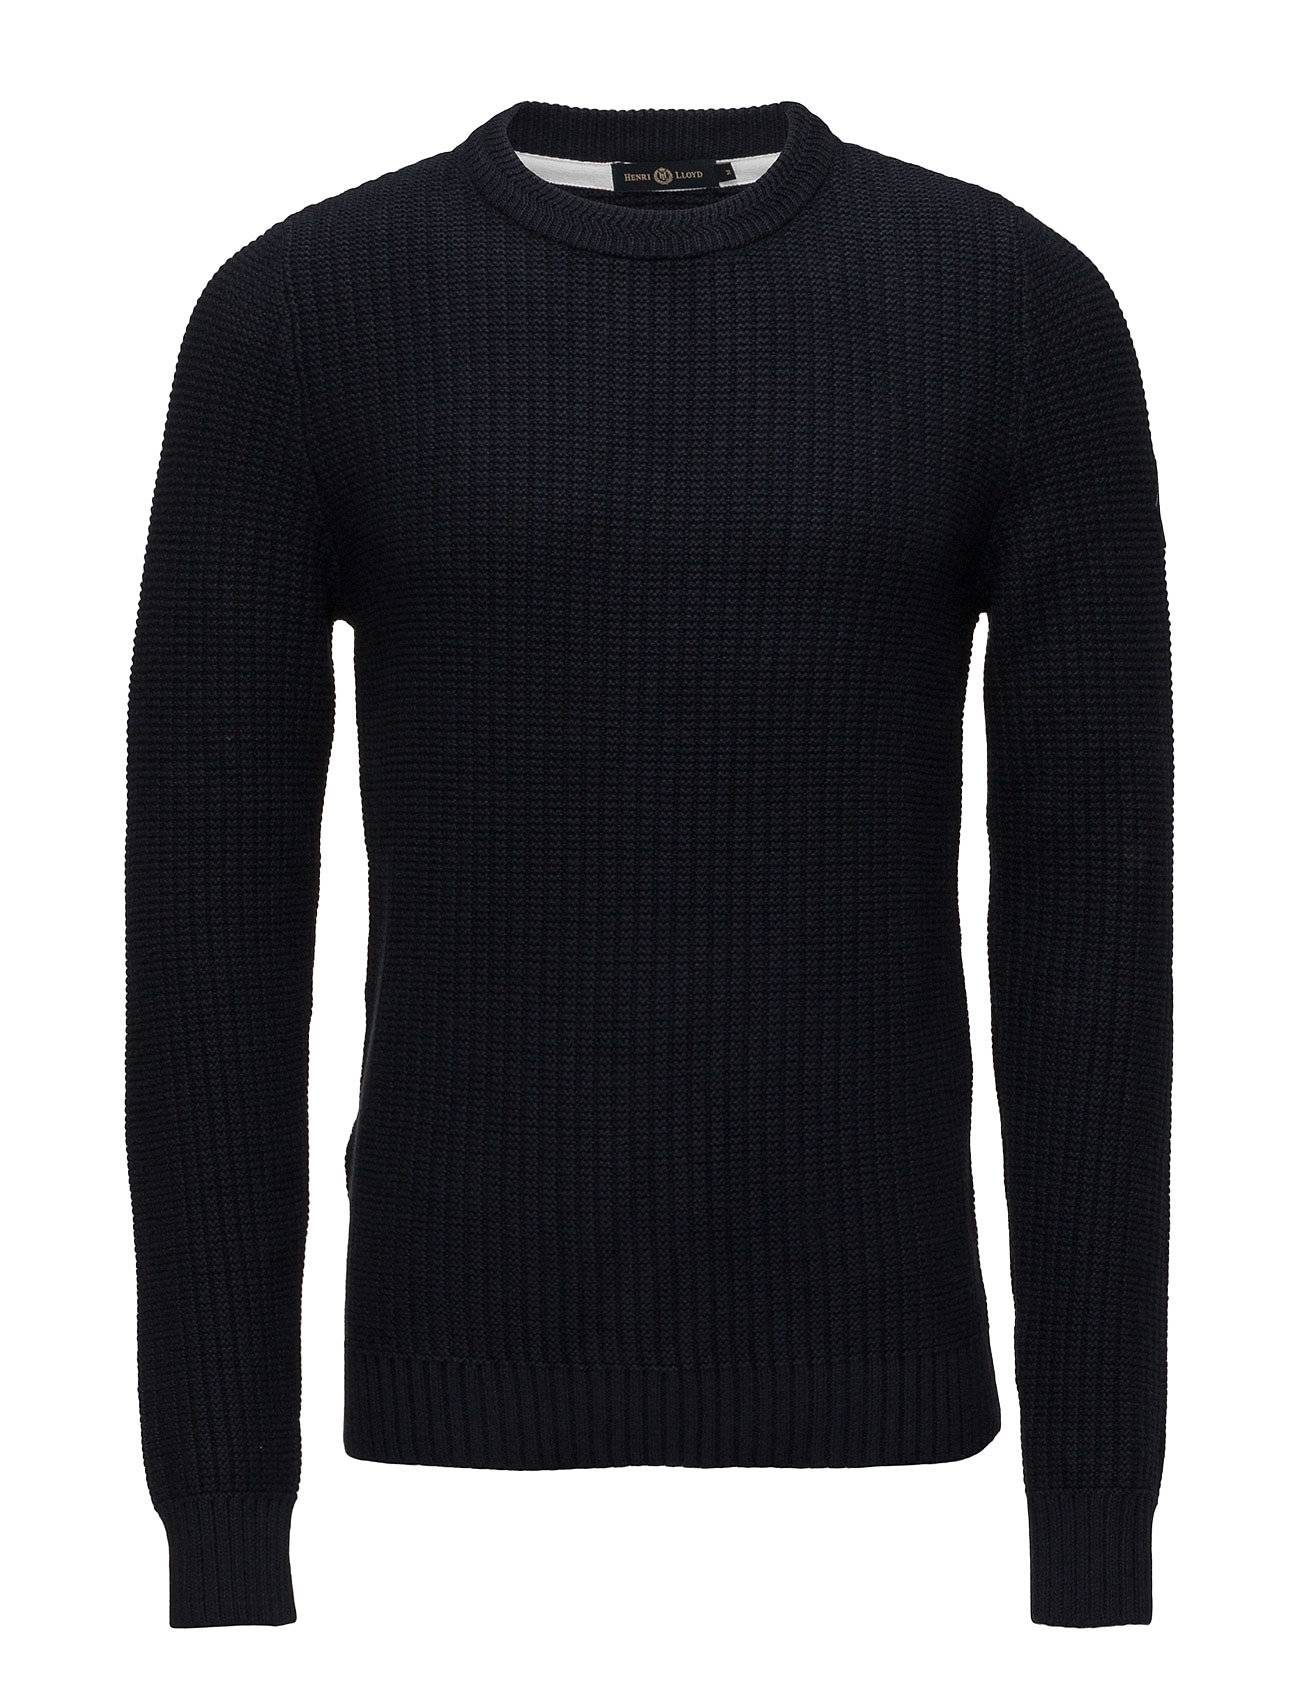 Henri Lloyd Felsted Crew Neck Knit